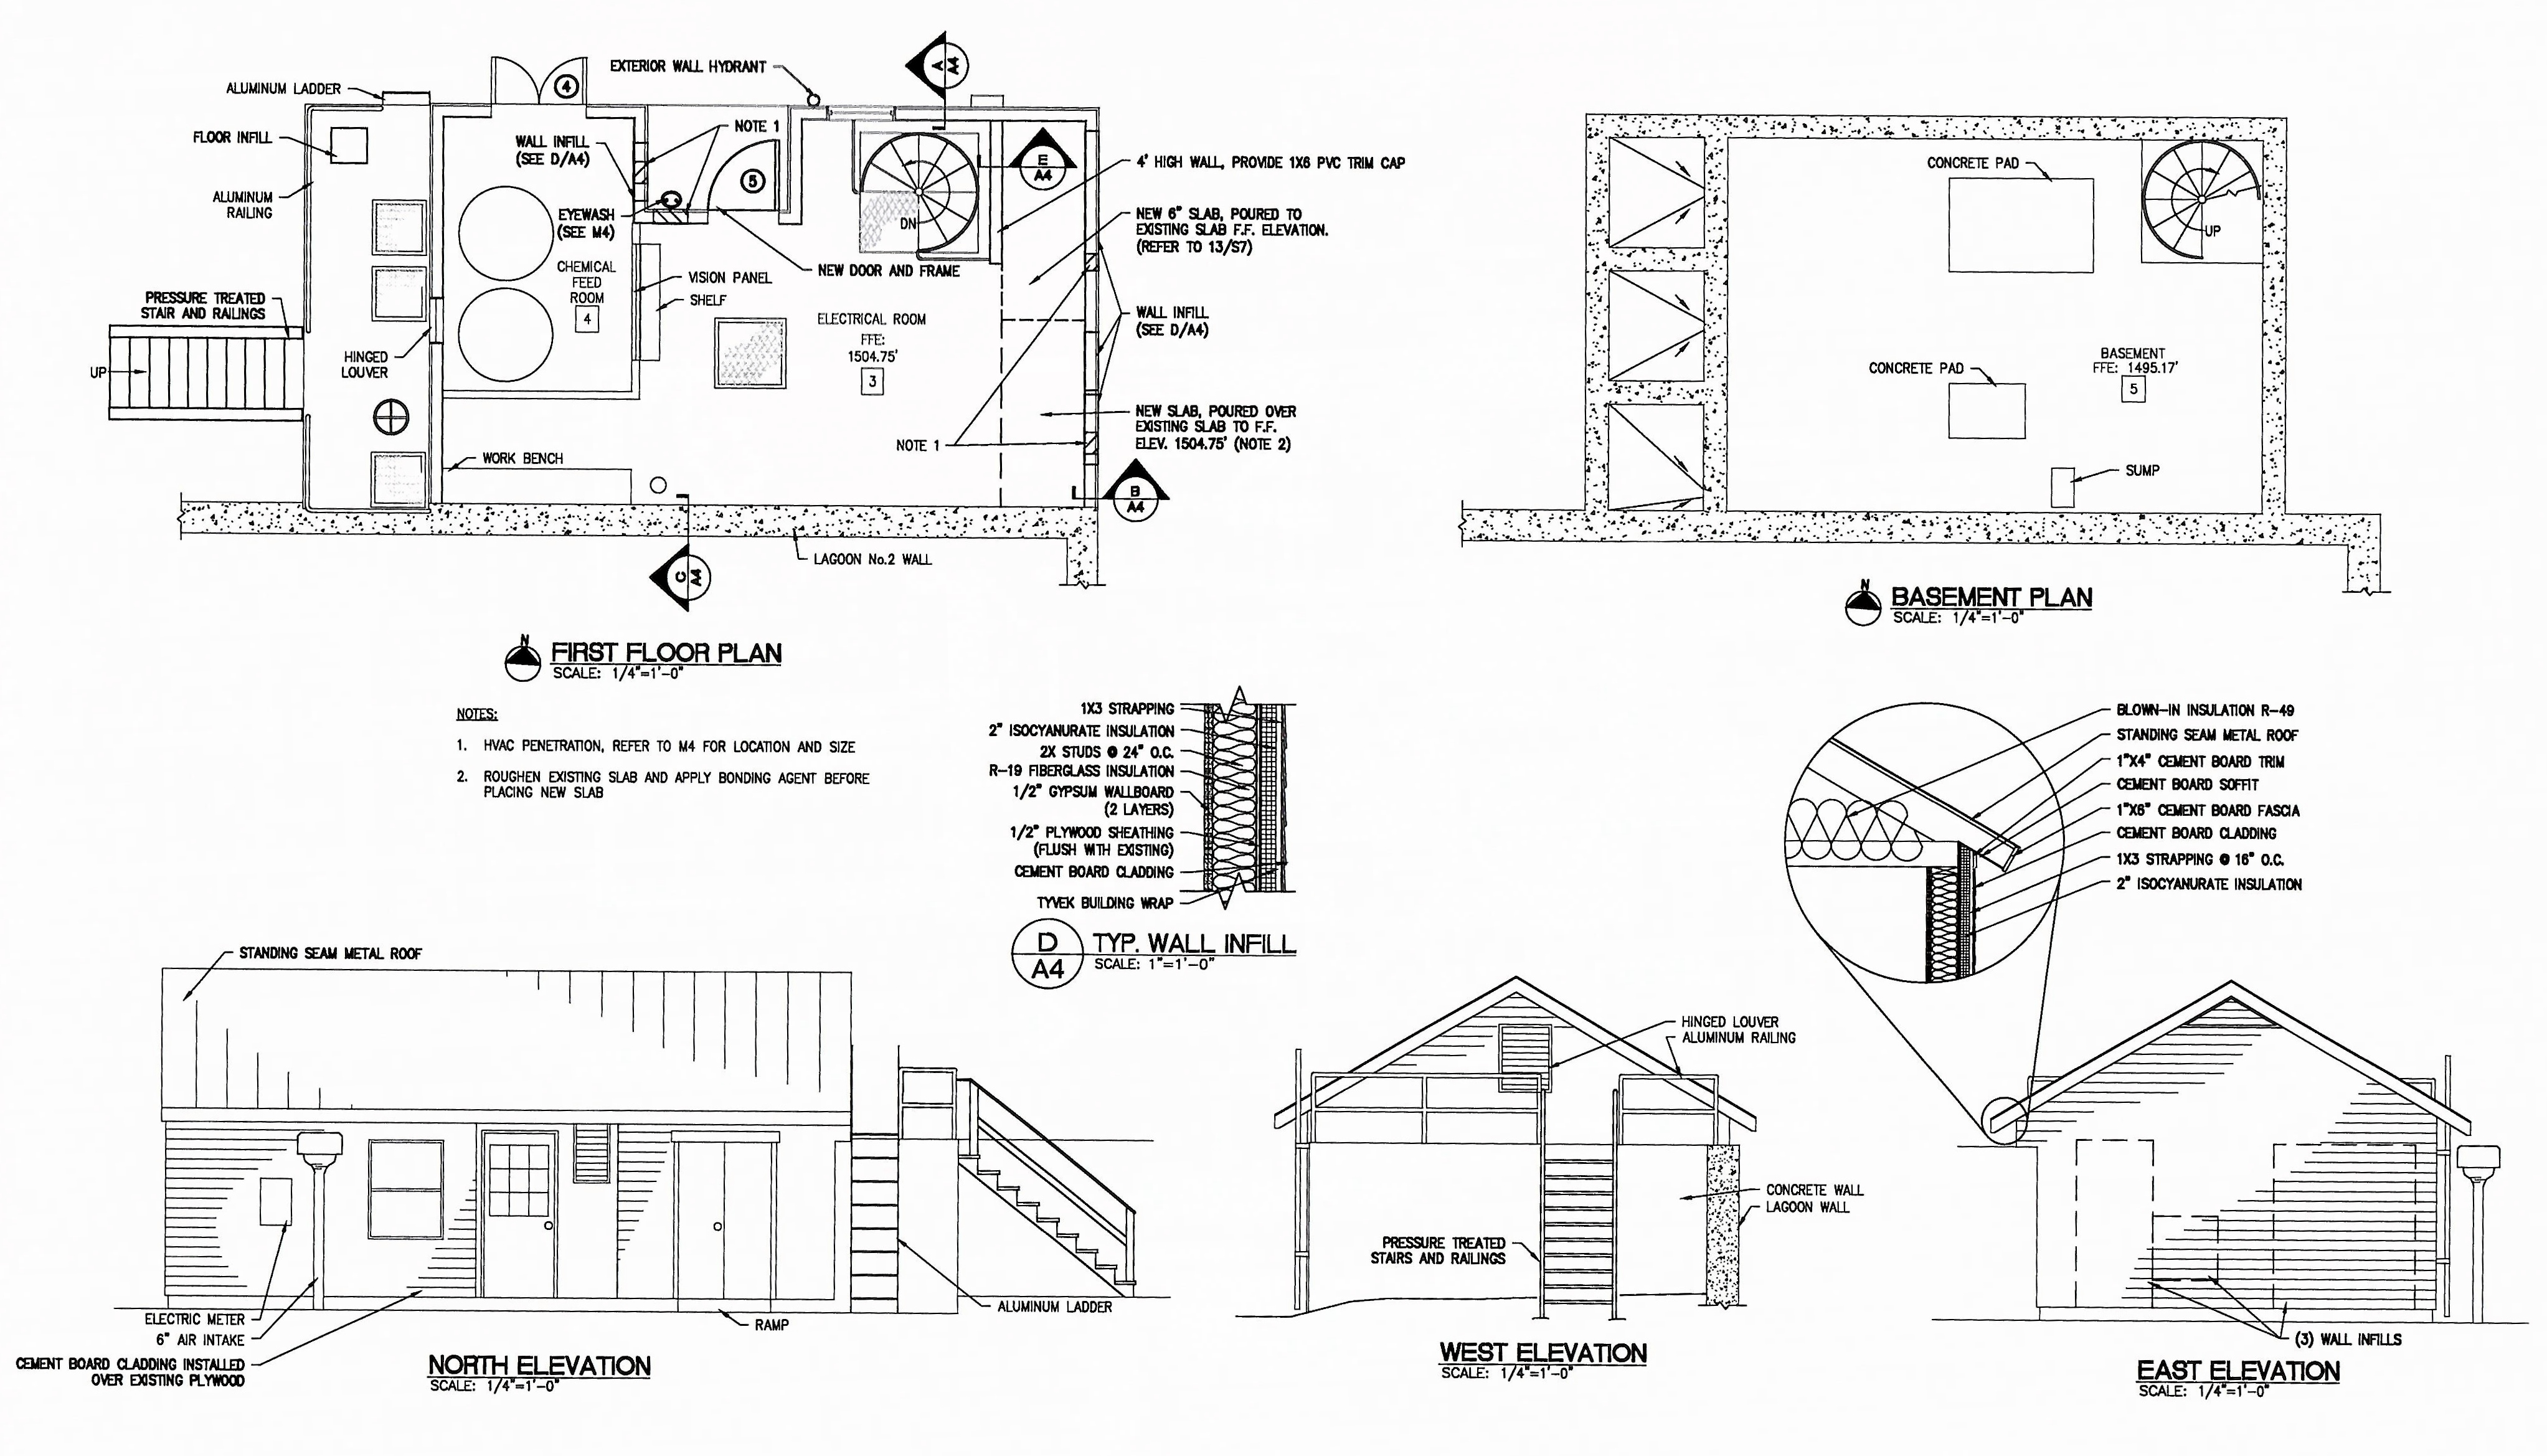 Wilmington Wastewater Facility Refurbishment Project John Deere Belt Diagram 8 10 From 7 Votes 9 New Primary Treatment Building